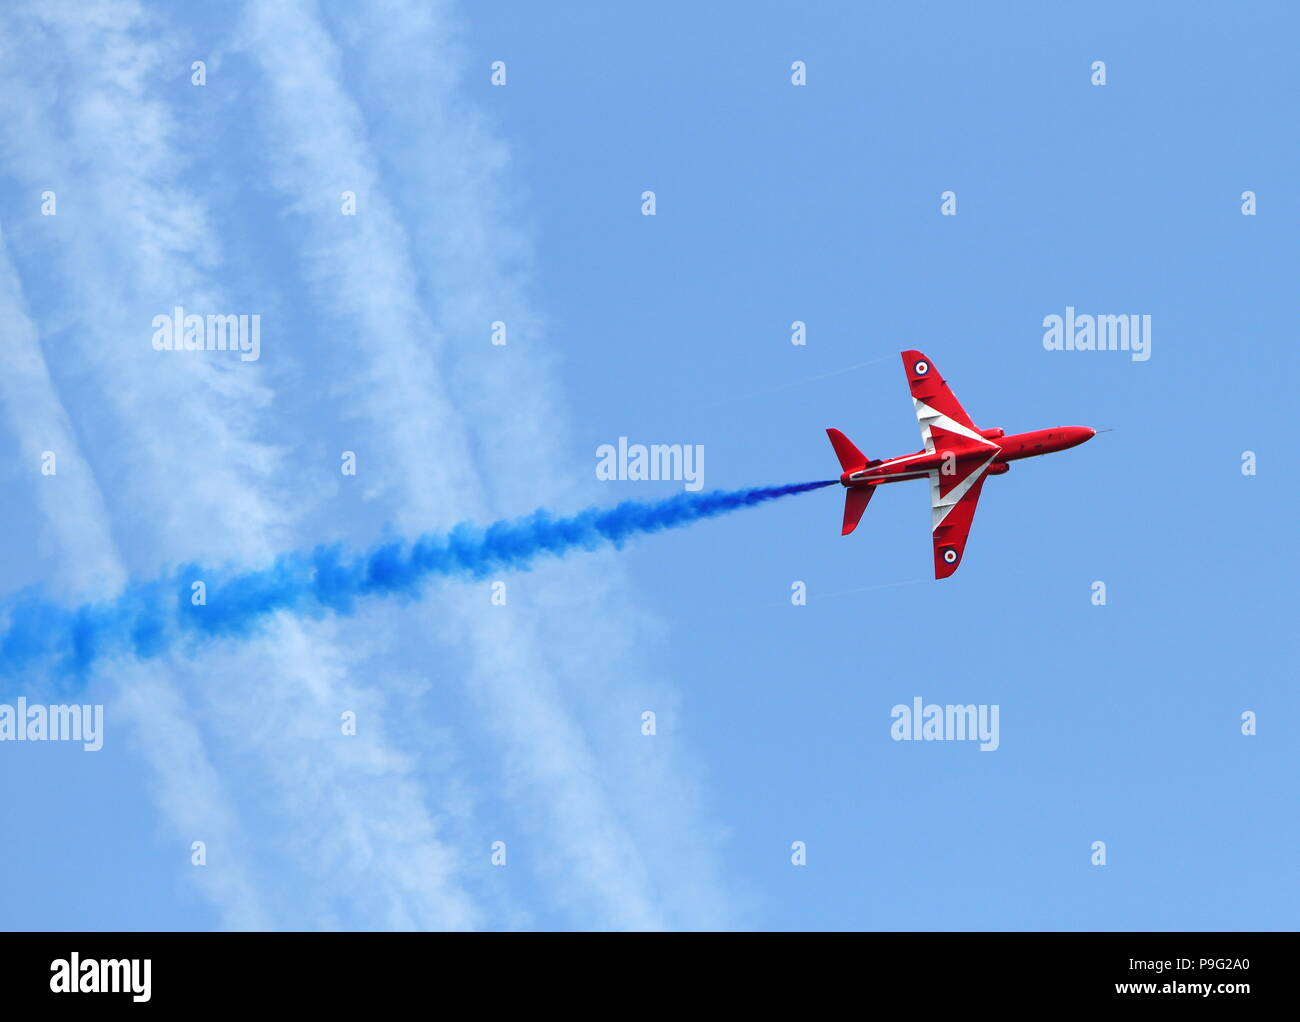 Torbay Airshow, Devon, England: The RAF Red Arrows display team breaks formation as it ascends - Stock Image